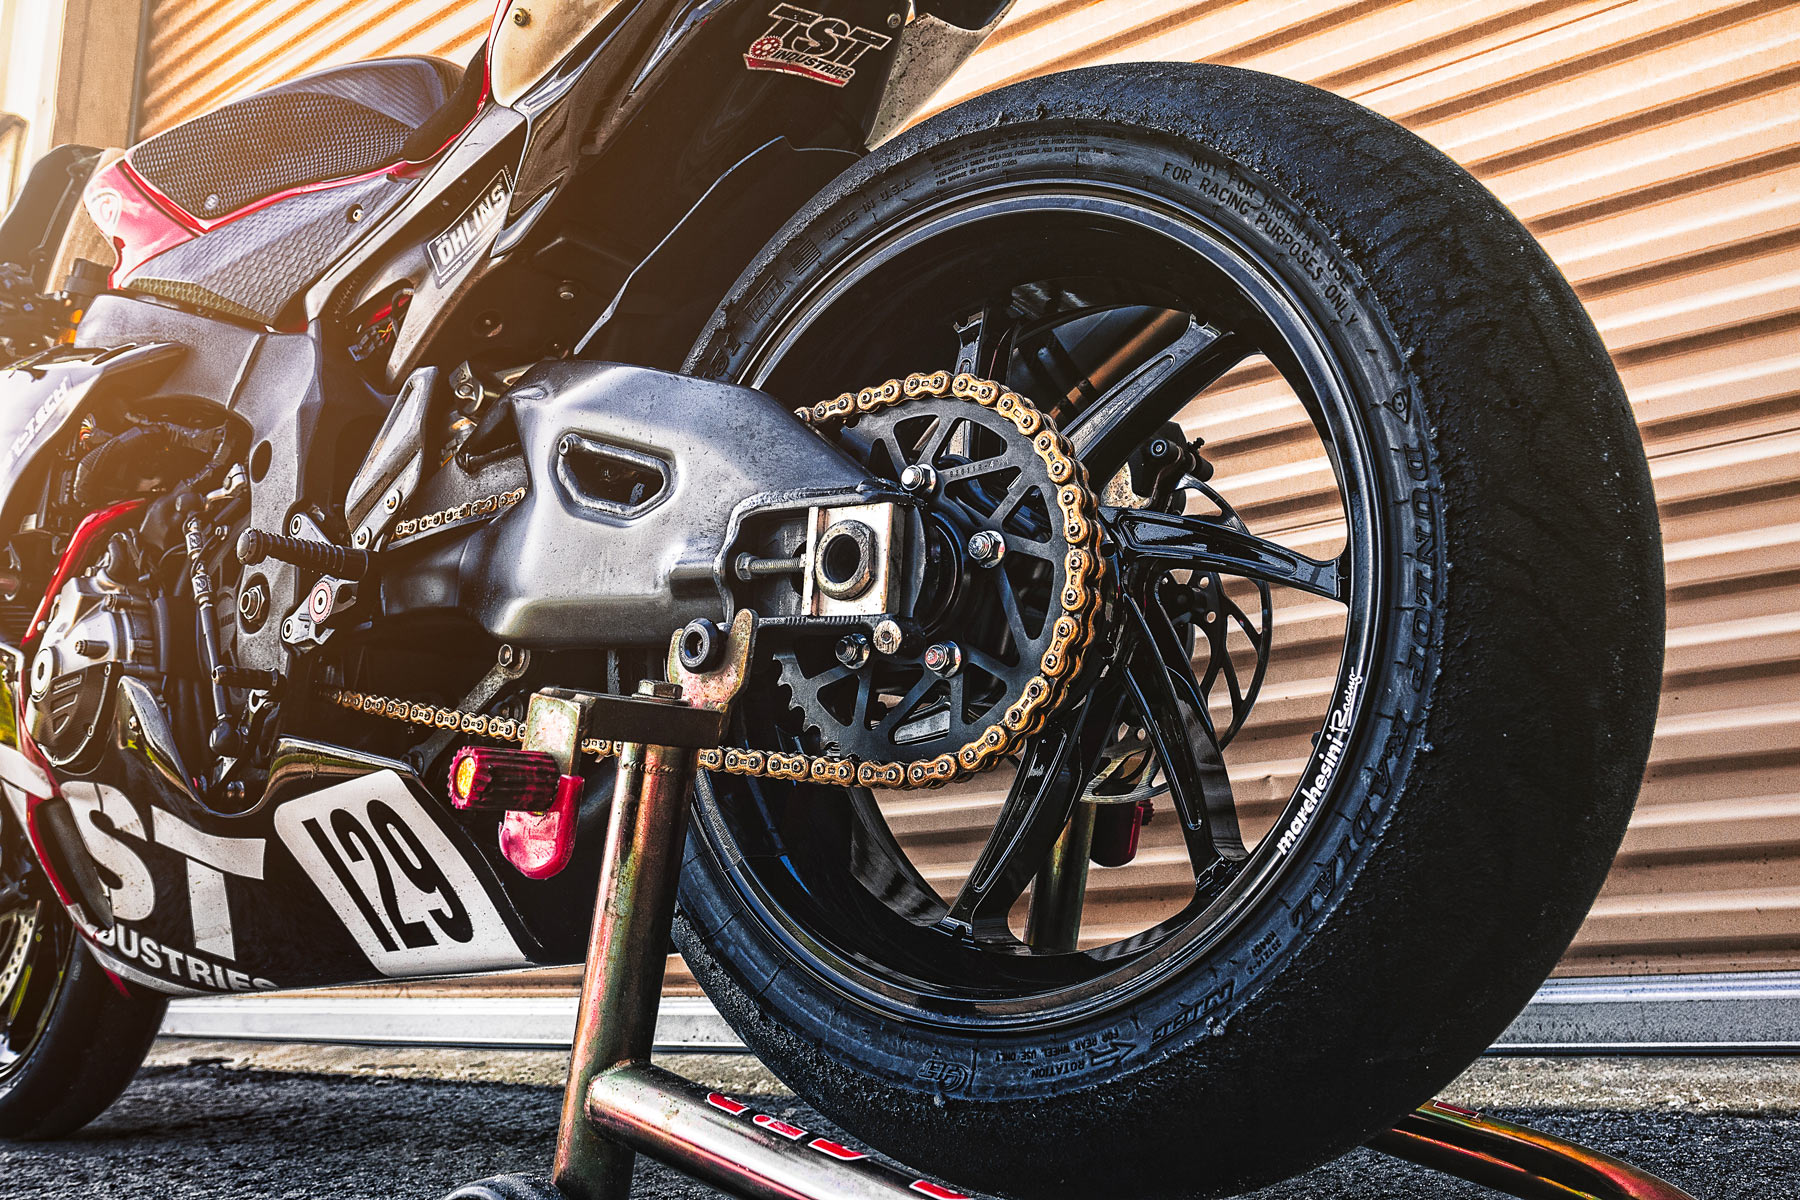 The TST Race YZF-R1 showing off it's high performance wheels and swingarm assembly.